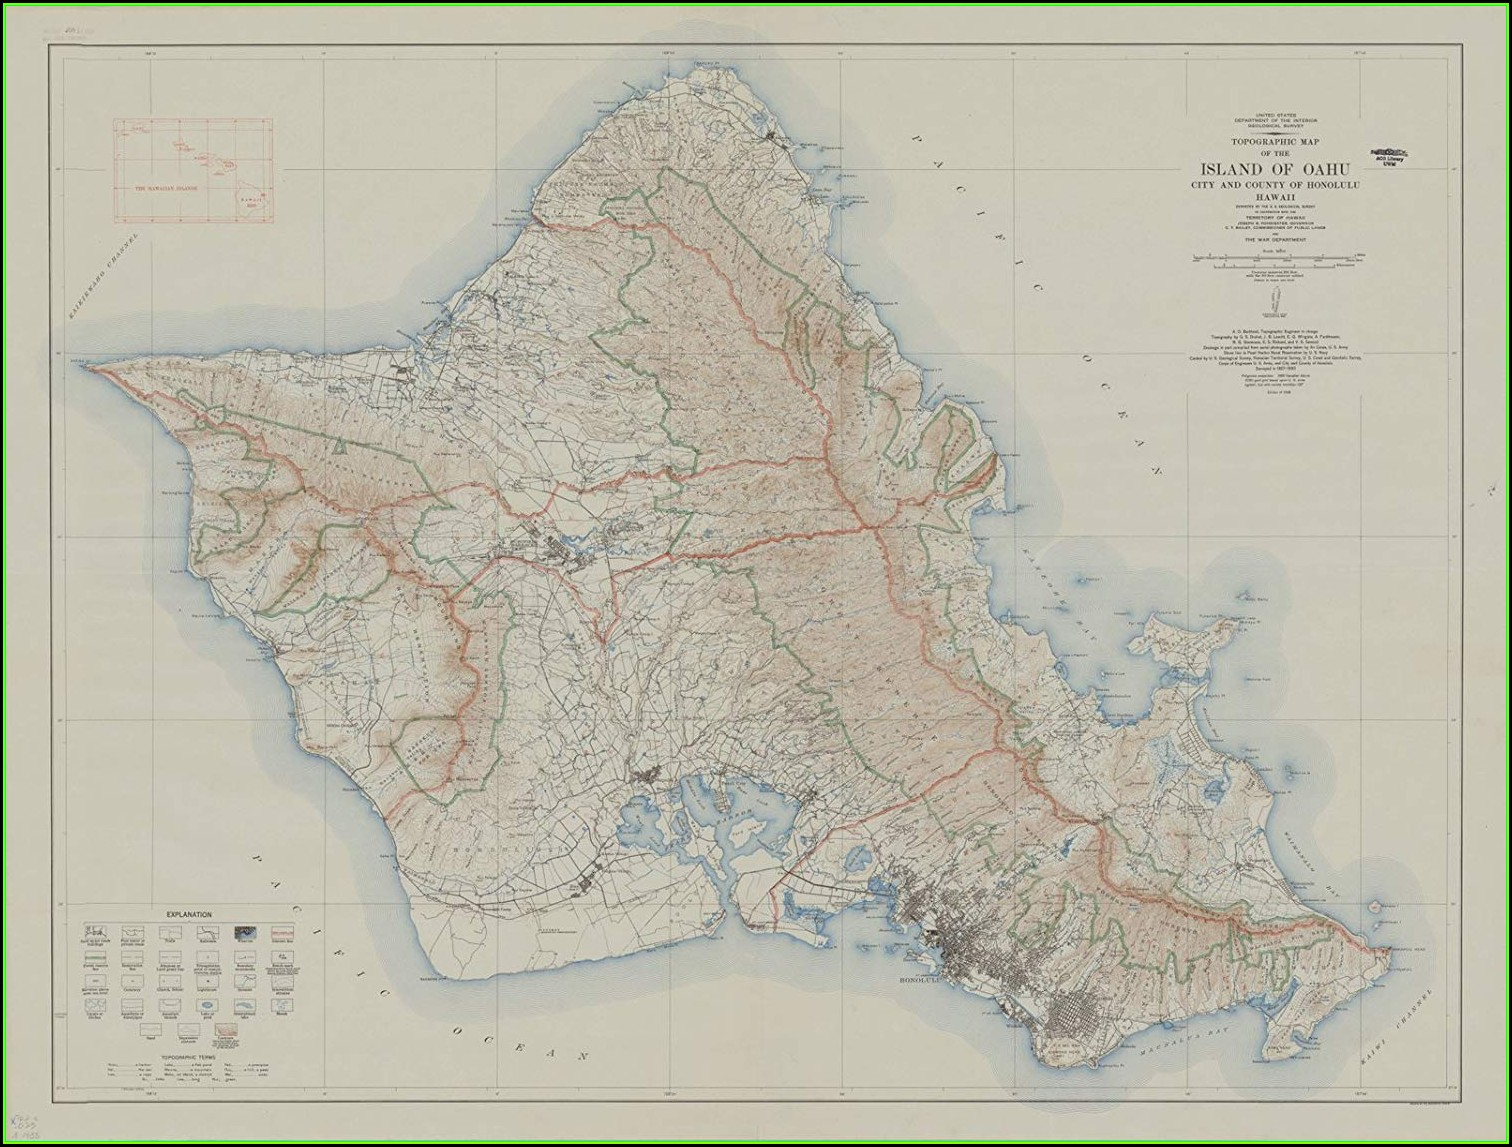 Oahu Hawaii Topographic Map